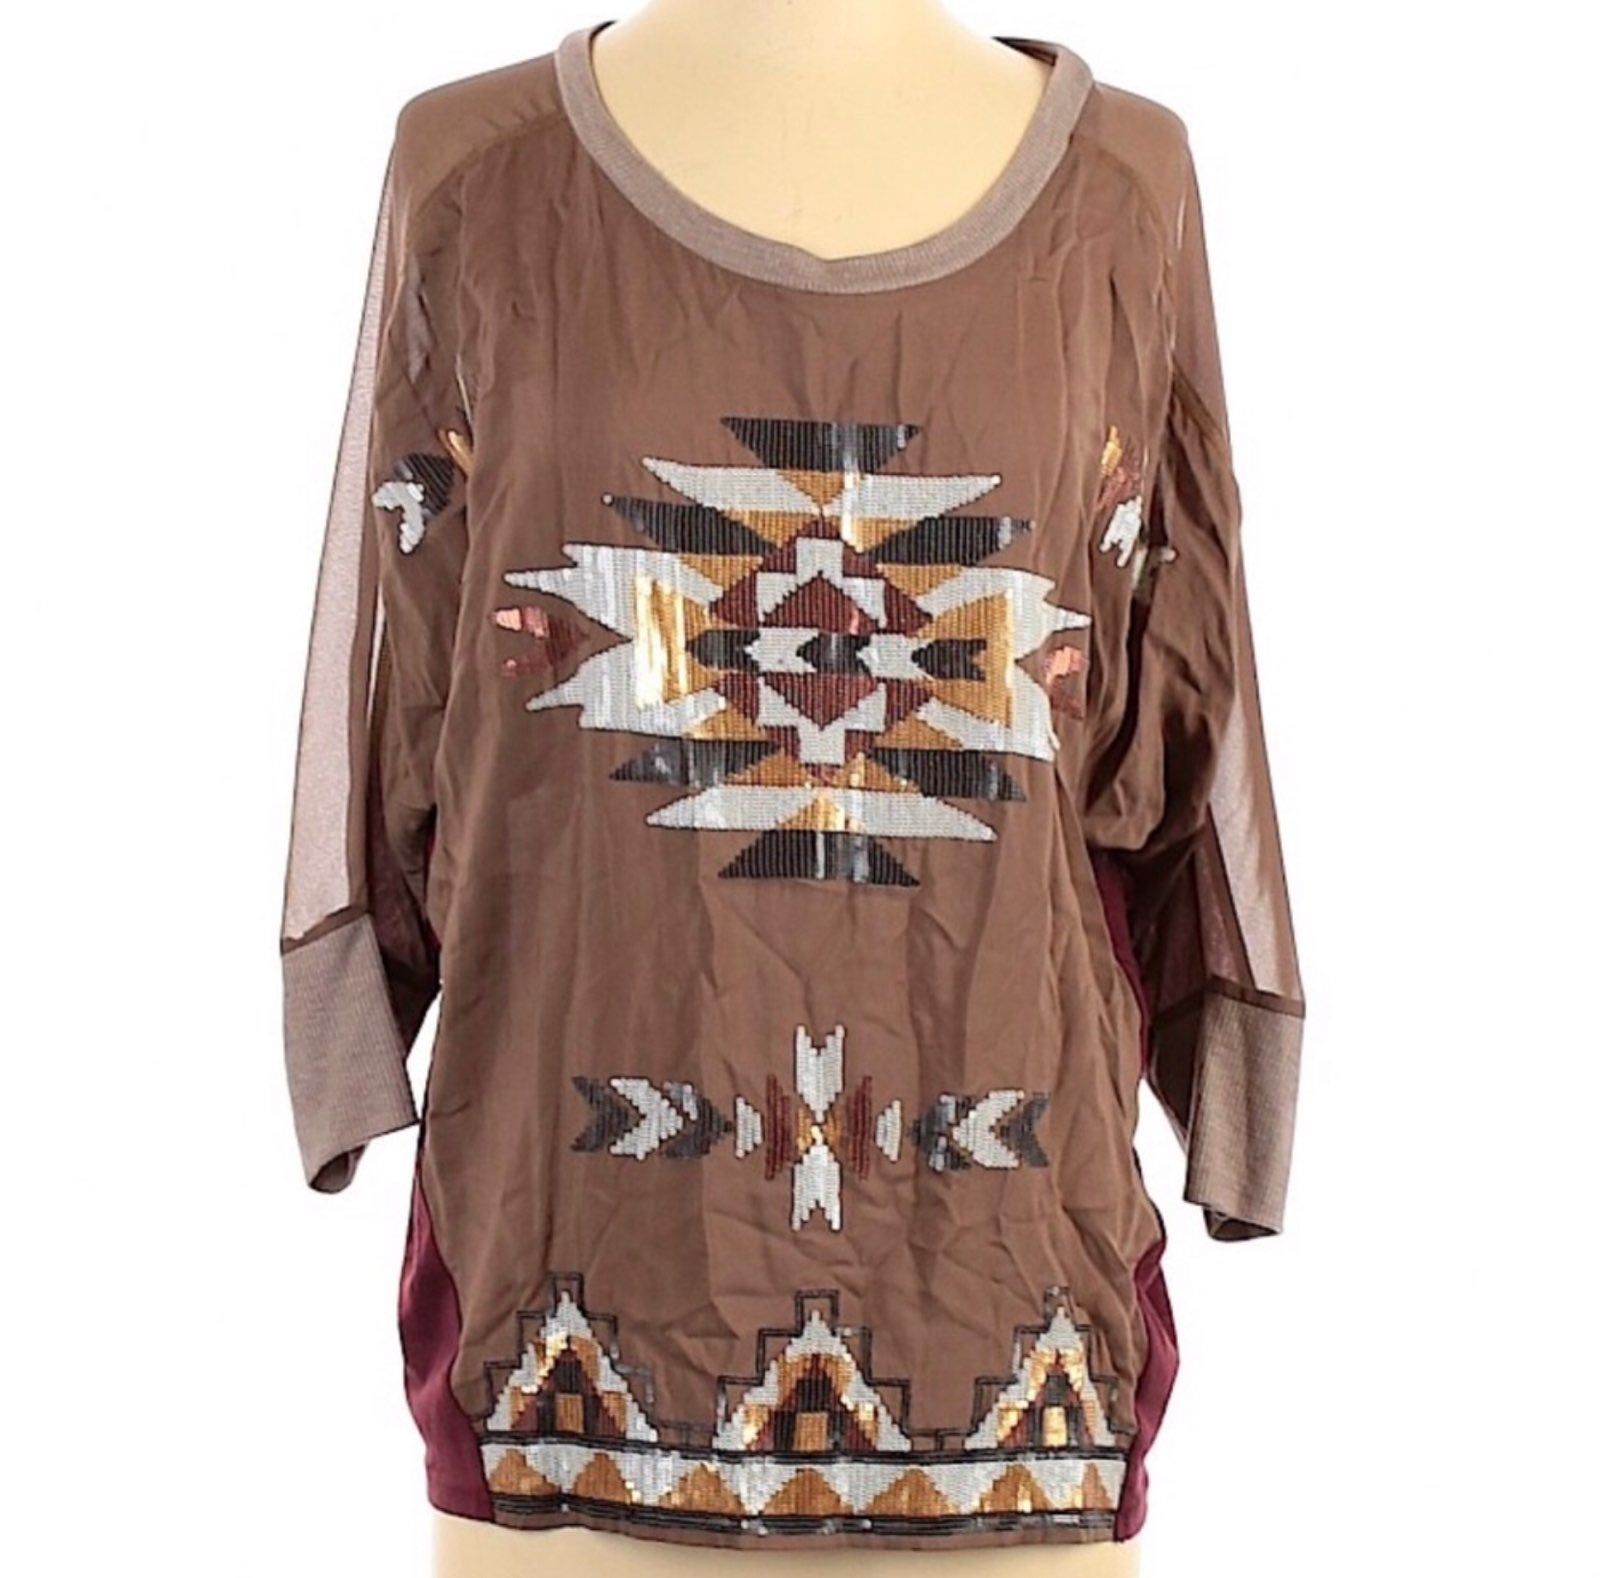 Miss Me Sequined Tribal Top Size M